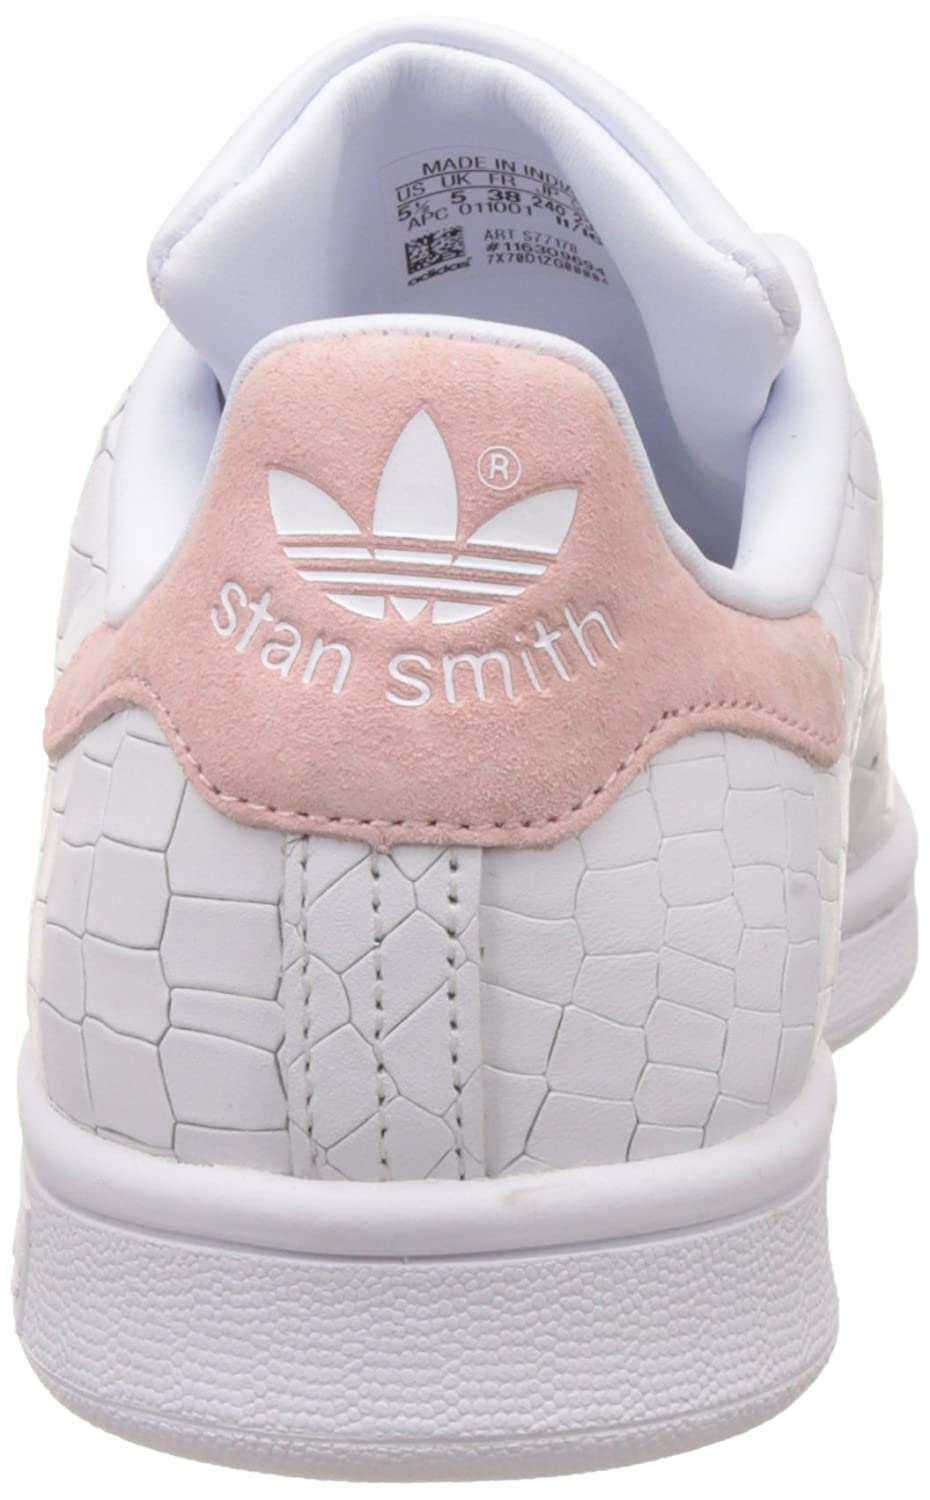 adidas originals stan smith s77178